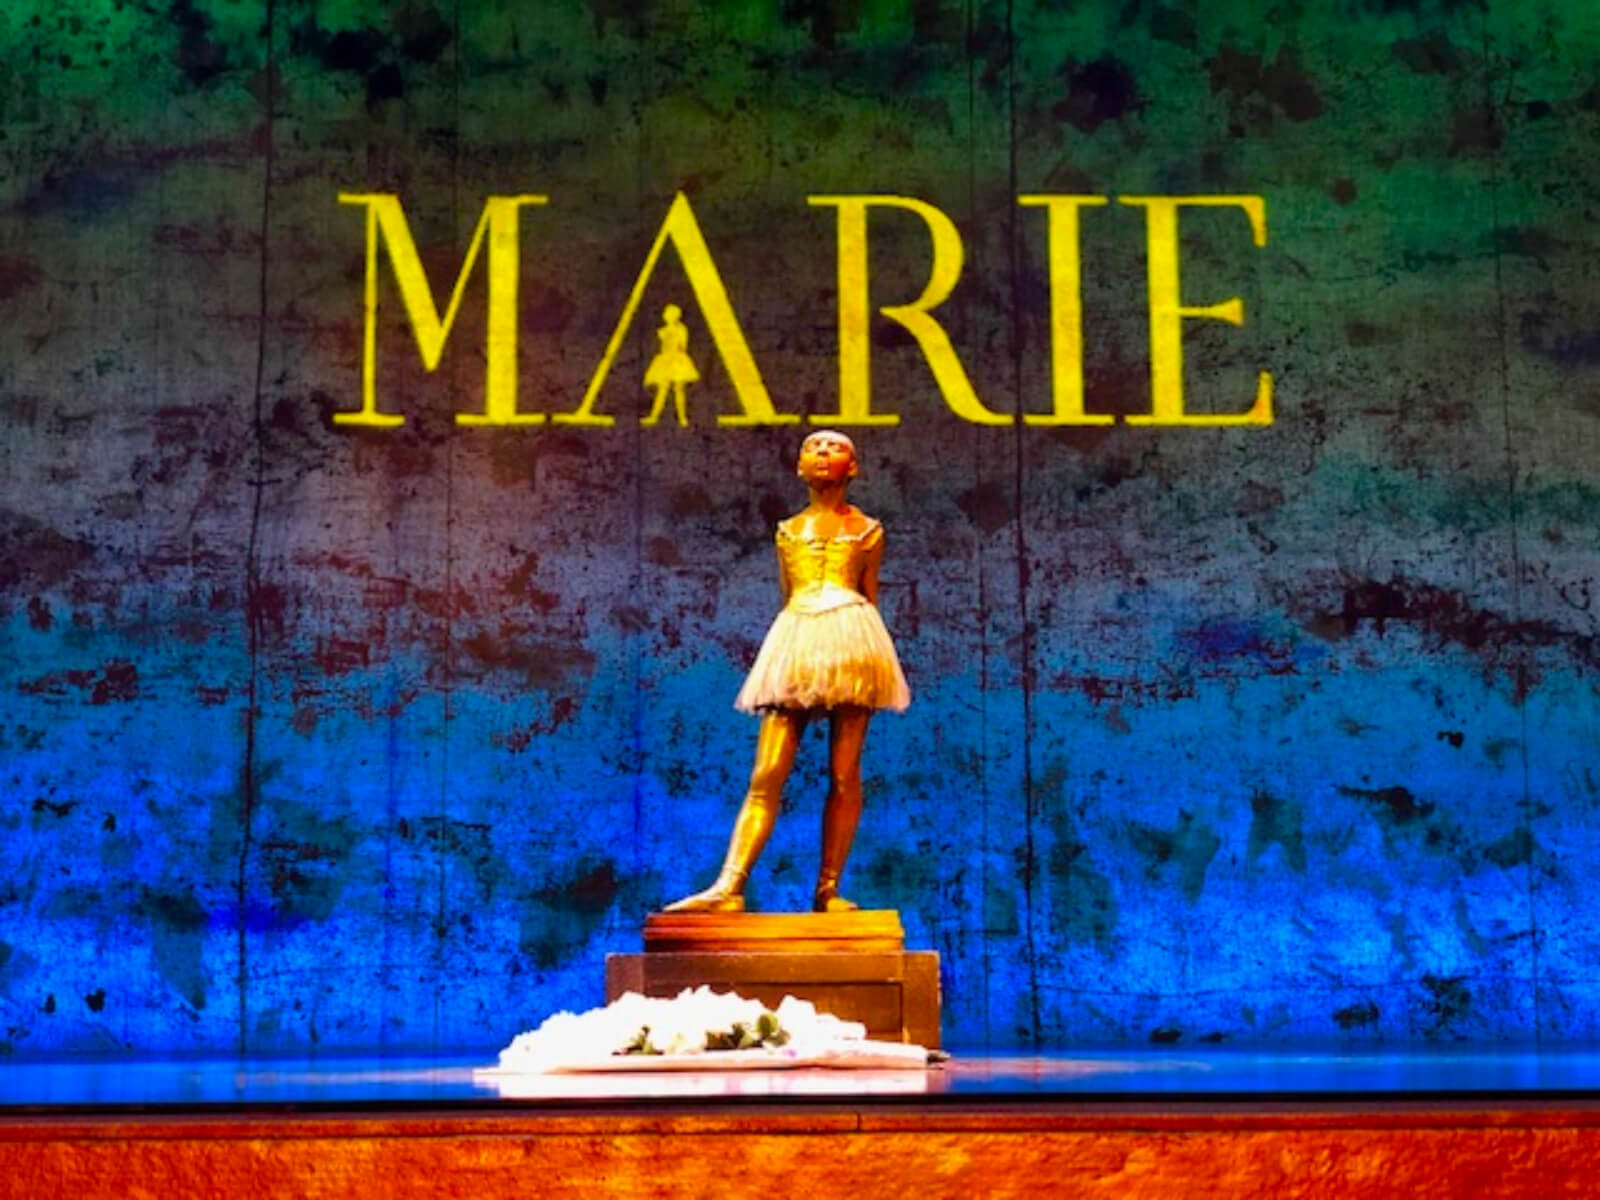 Degas sculpture of The Little Dancer in the musical Marie.